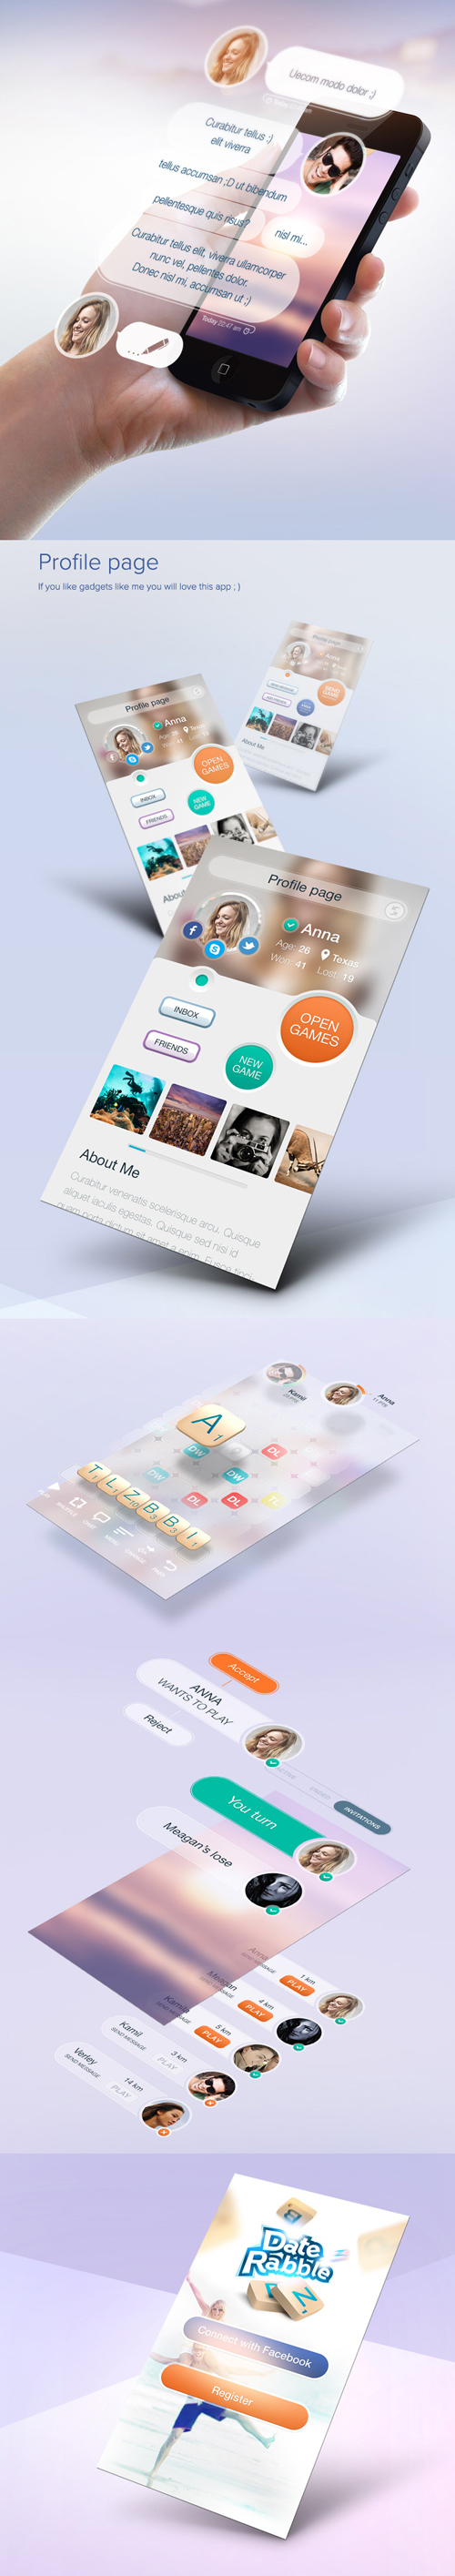 Game app UI Design Concepts to Boost User Experience